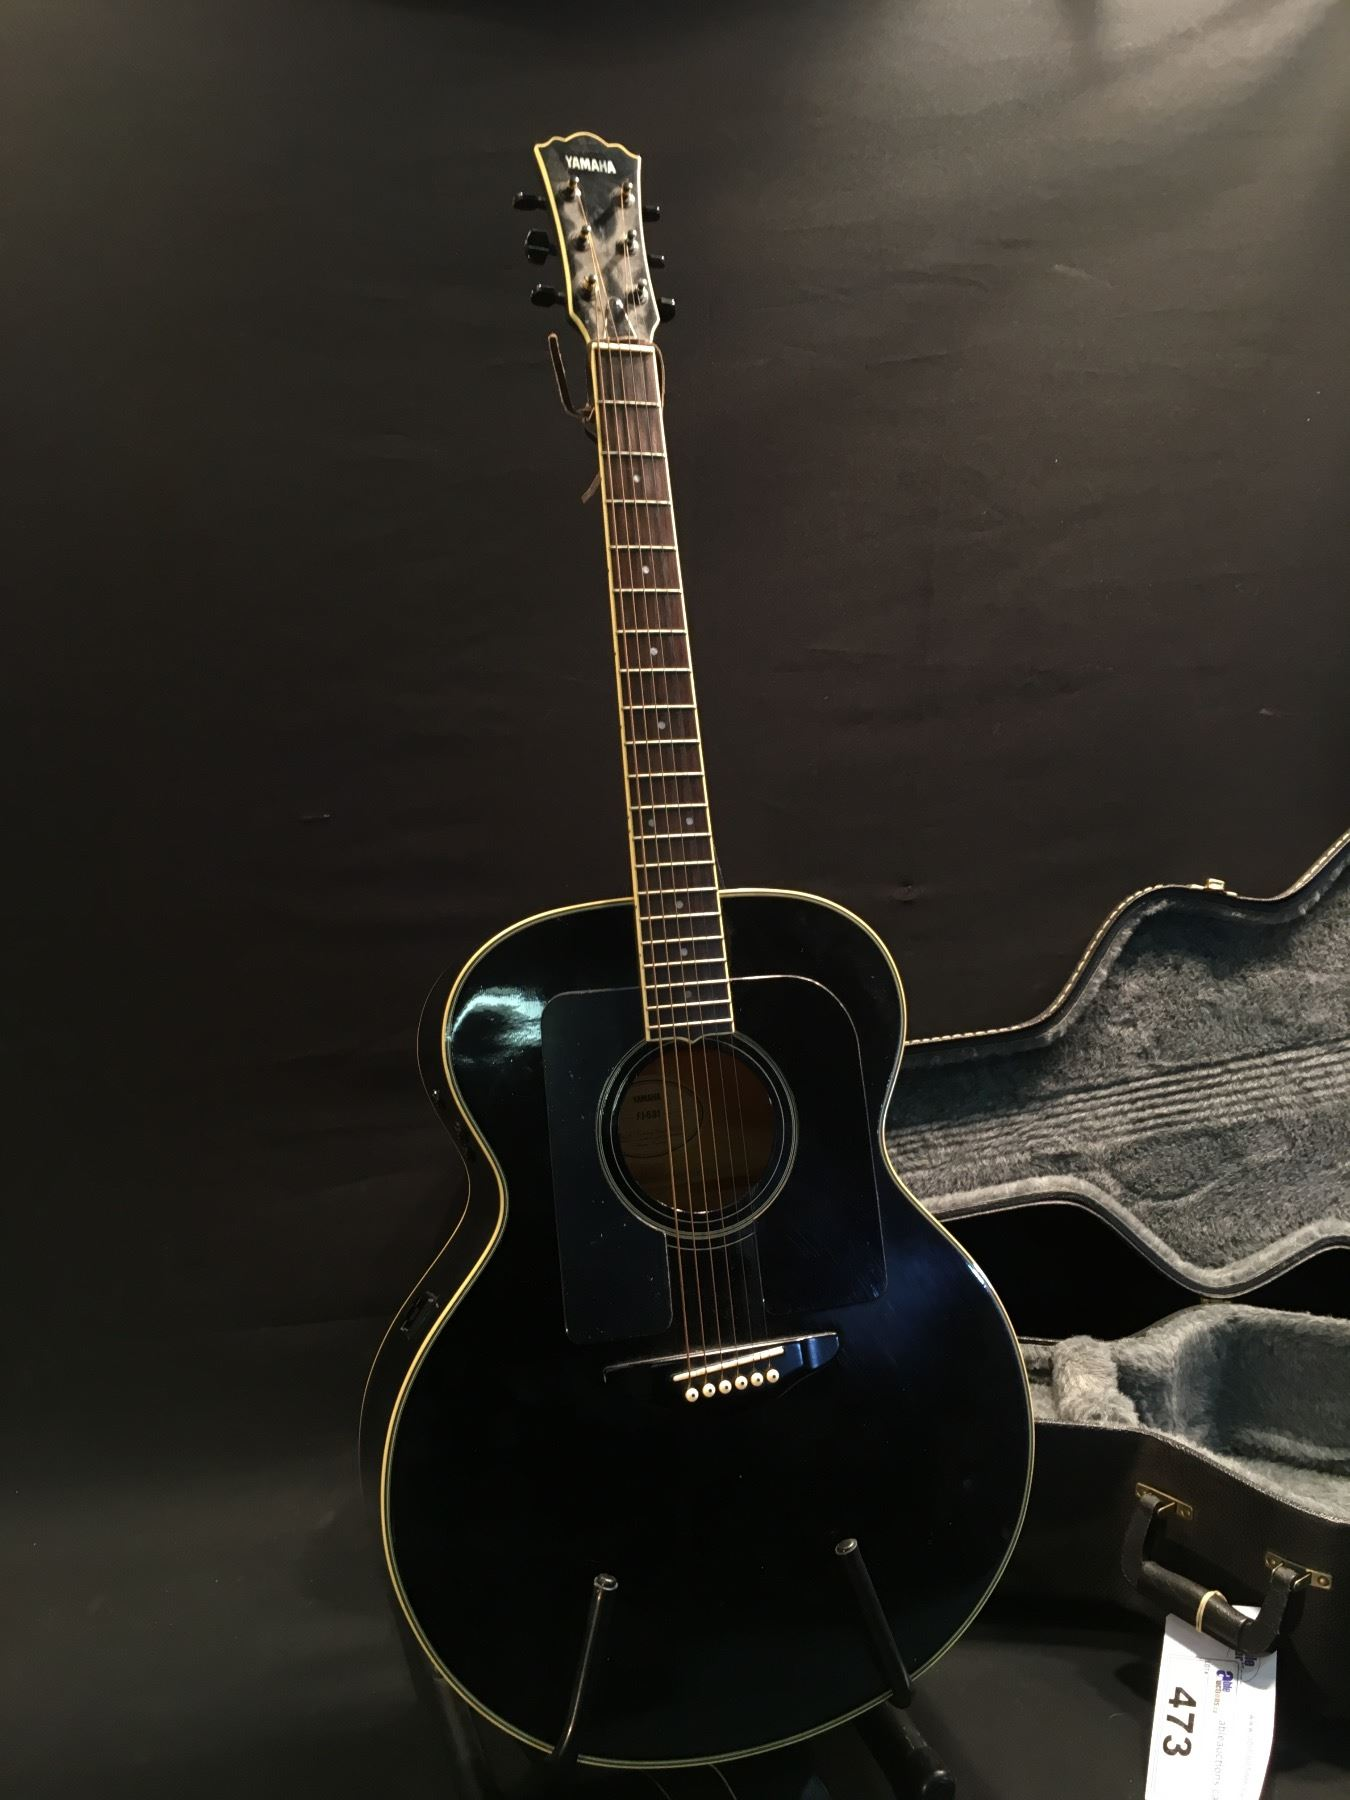 yamaha model fj 681 acoustic electric guitar comes with hard shell case. Black Bedroom Furniture Sets. Home Design Ideas